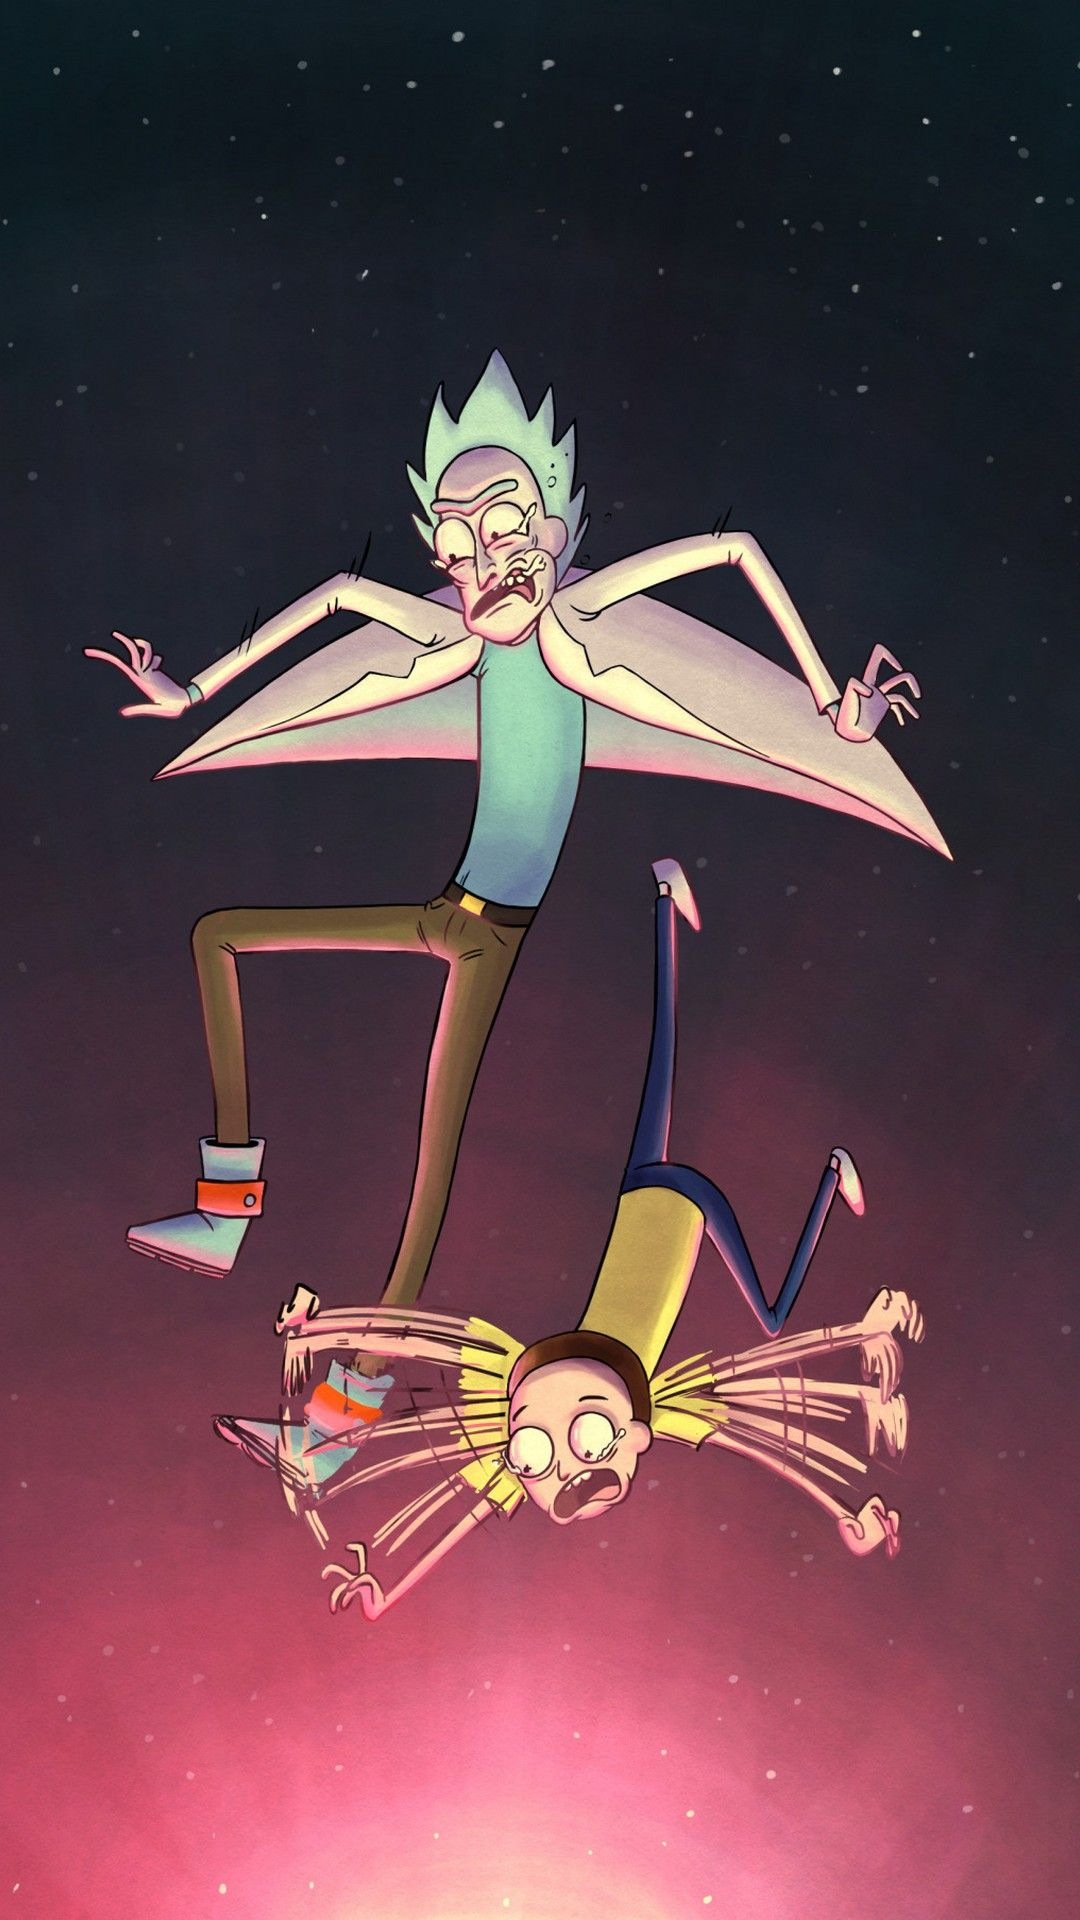 Best Rick And Morty Cartoon Network Iphone Wallpaper Best Iphone Wallpaper Rick I Morty Rick And Morty Morty